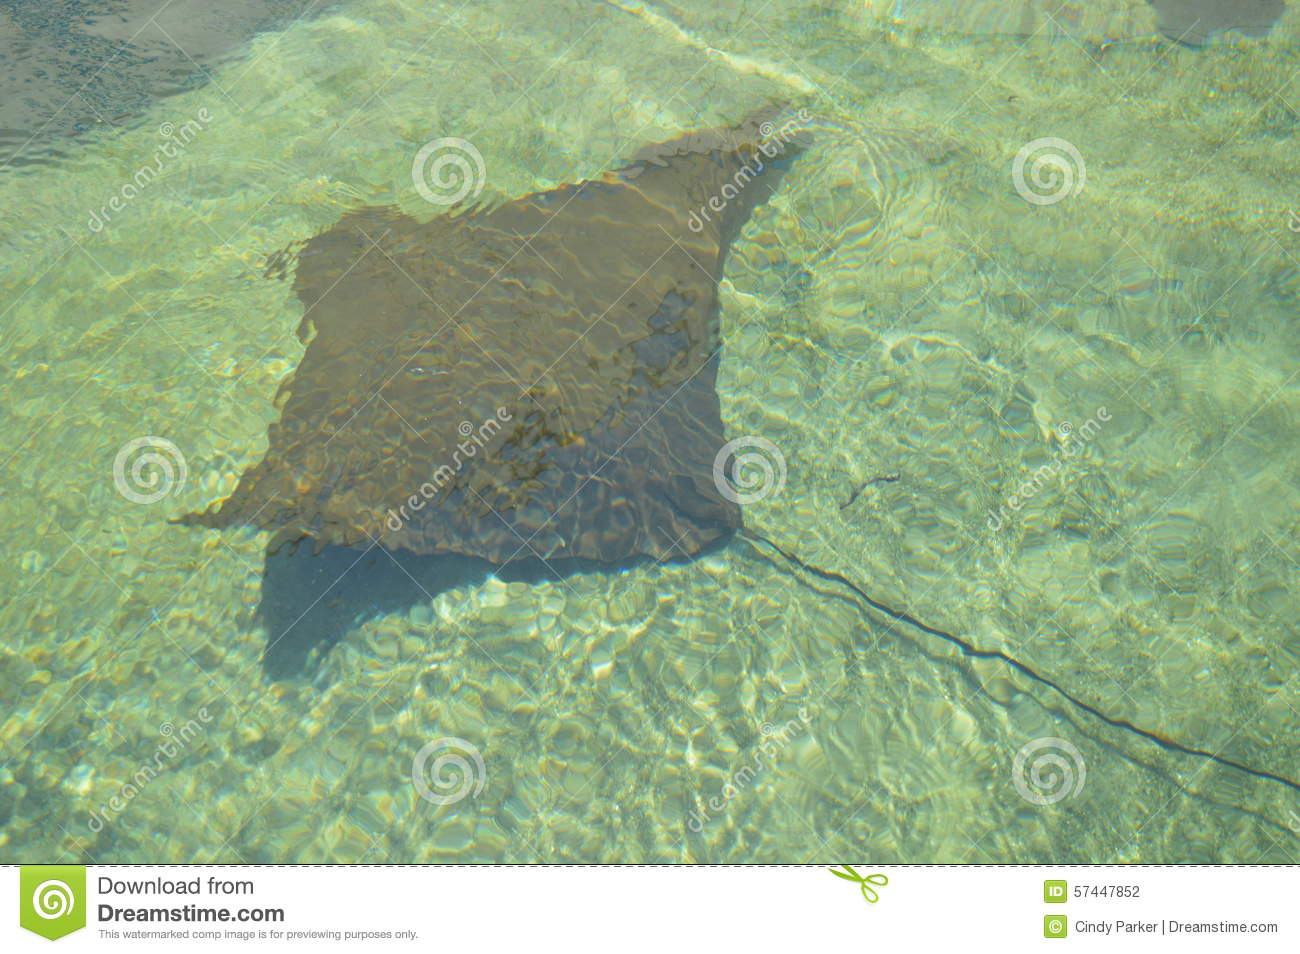 Stingray Stock Photo Image 57447852